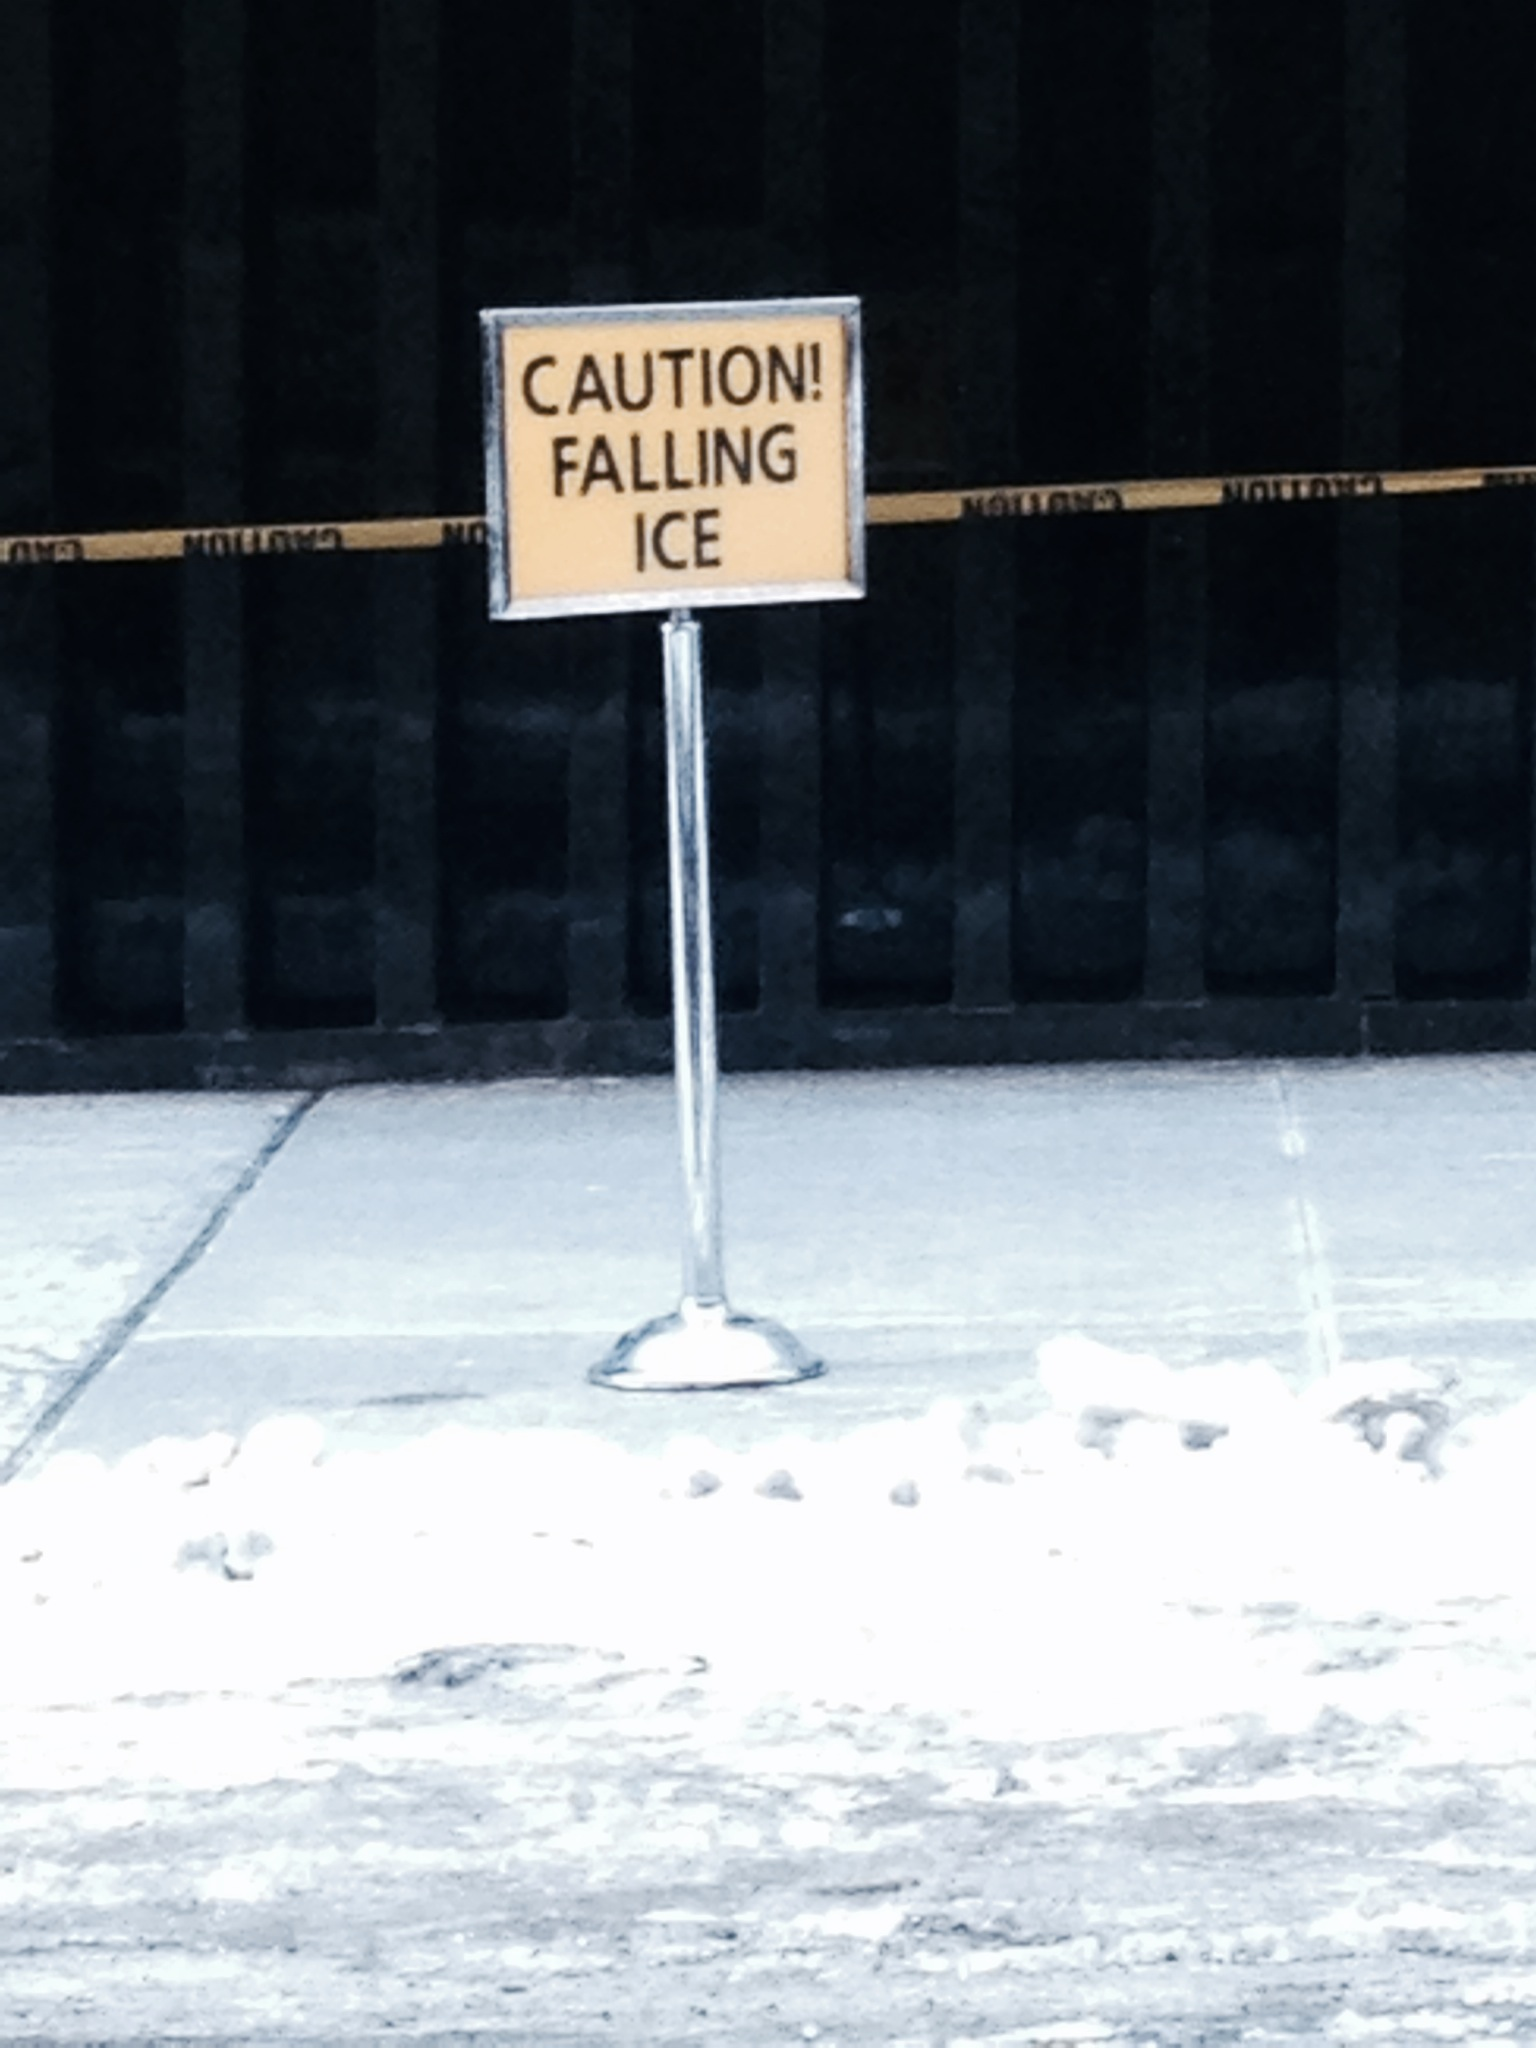 A sign in the Financial District warns pedestrians of falling ice. Photo by Lucy LeFever.